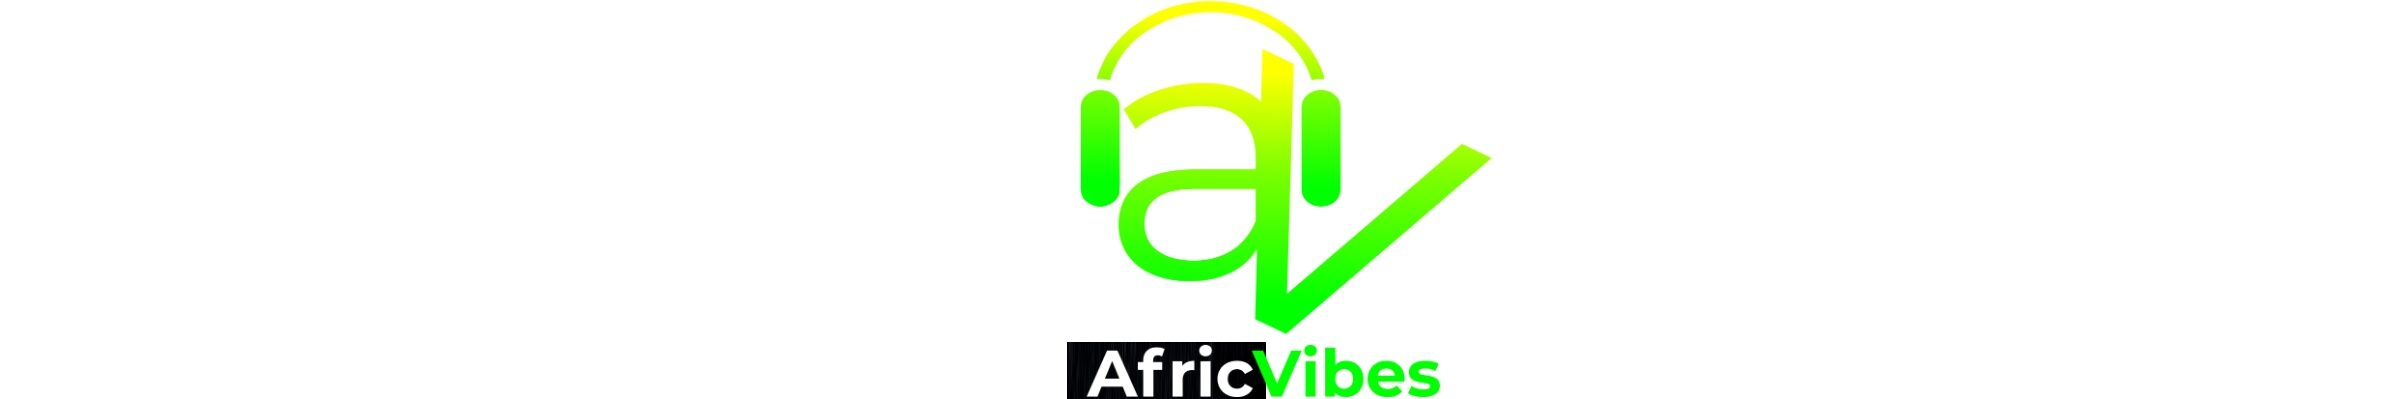 Africvibes | African #1 Music, Videos, Celebrity Gist & Entertainment Web Worldwide | Africvibes